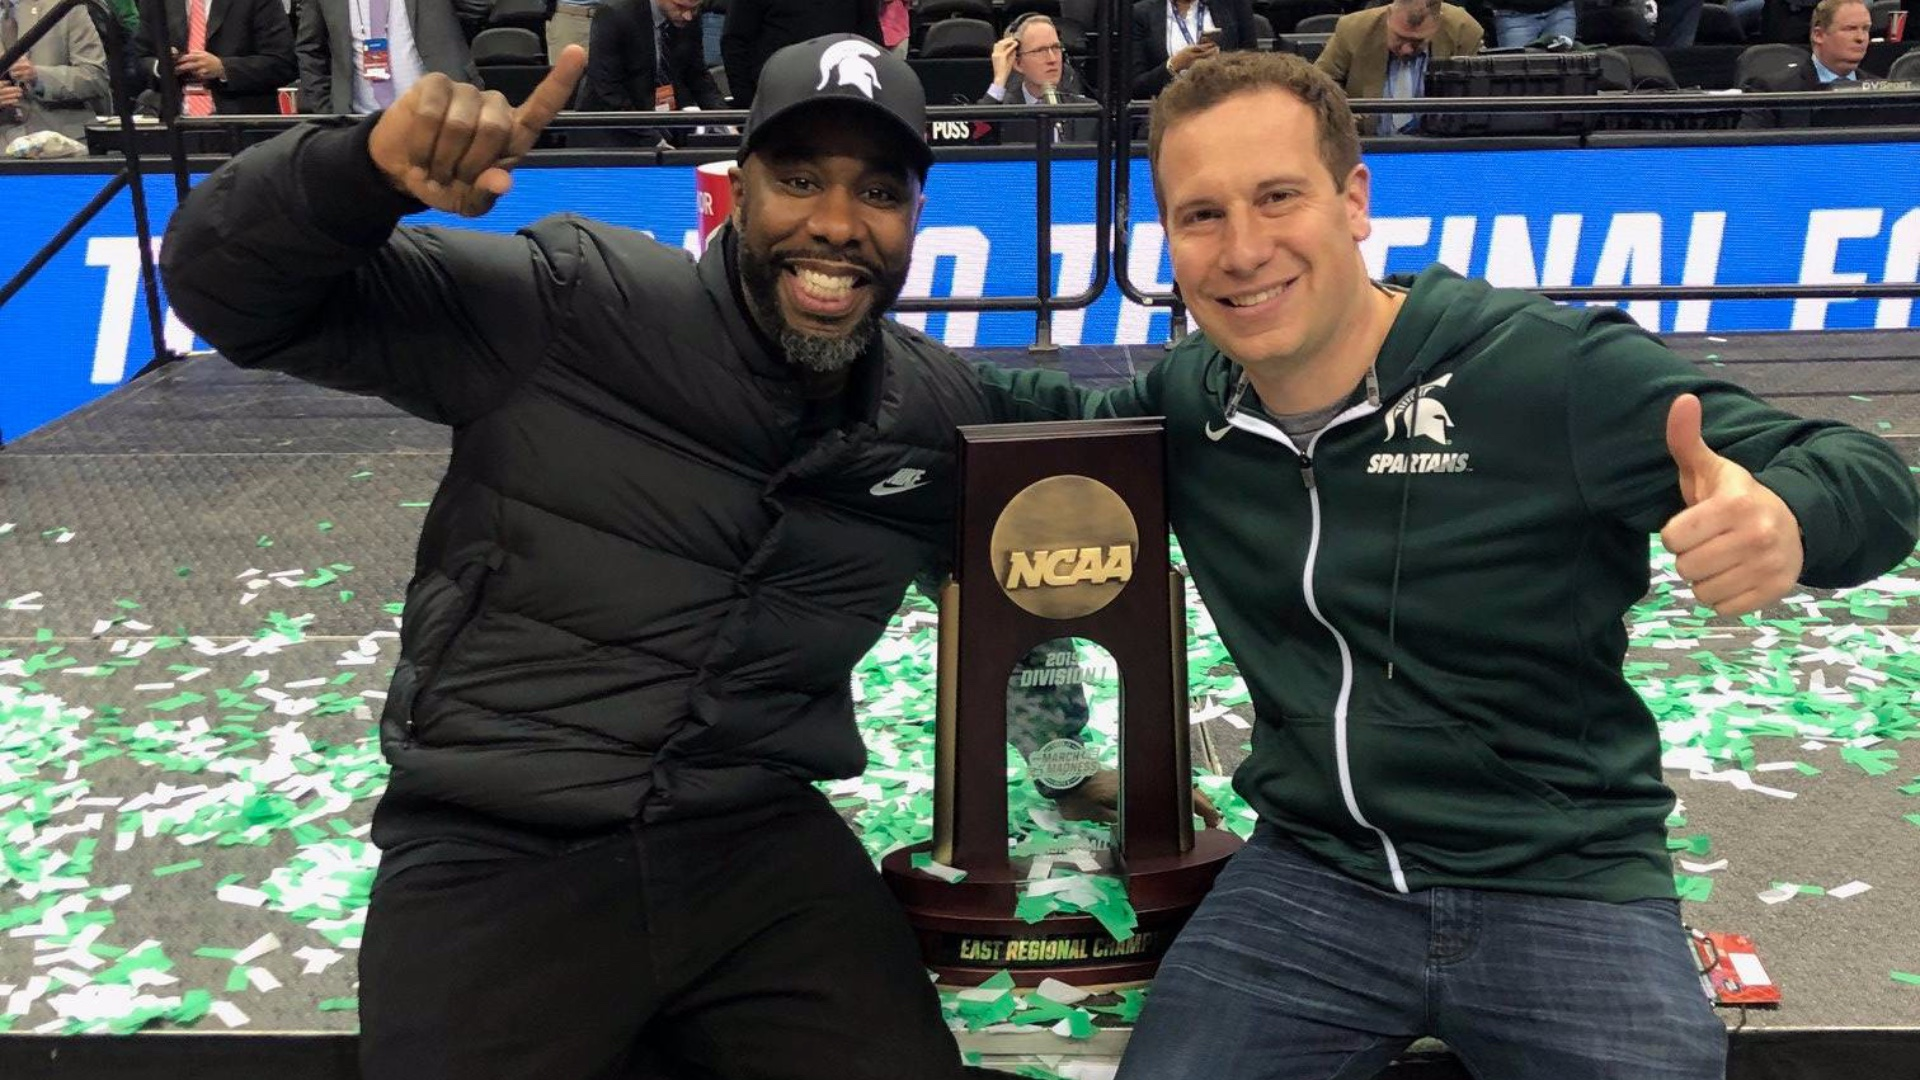 Mat Ishbia is worth billions as coach of his business; he credits lessons learned from Tom Izzo at Michigan State